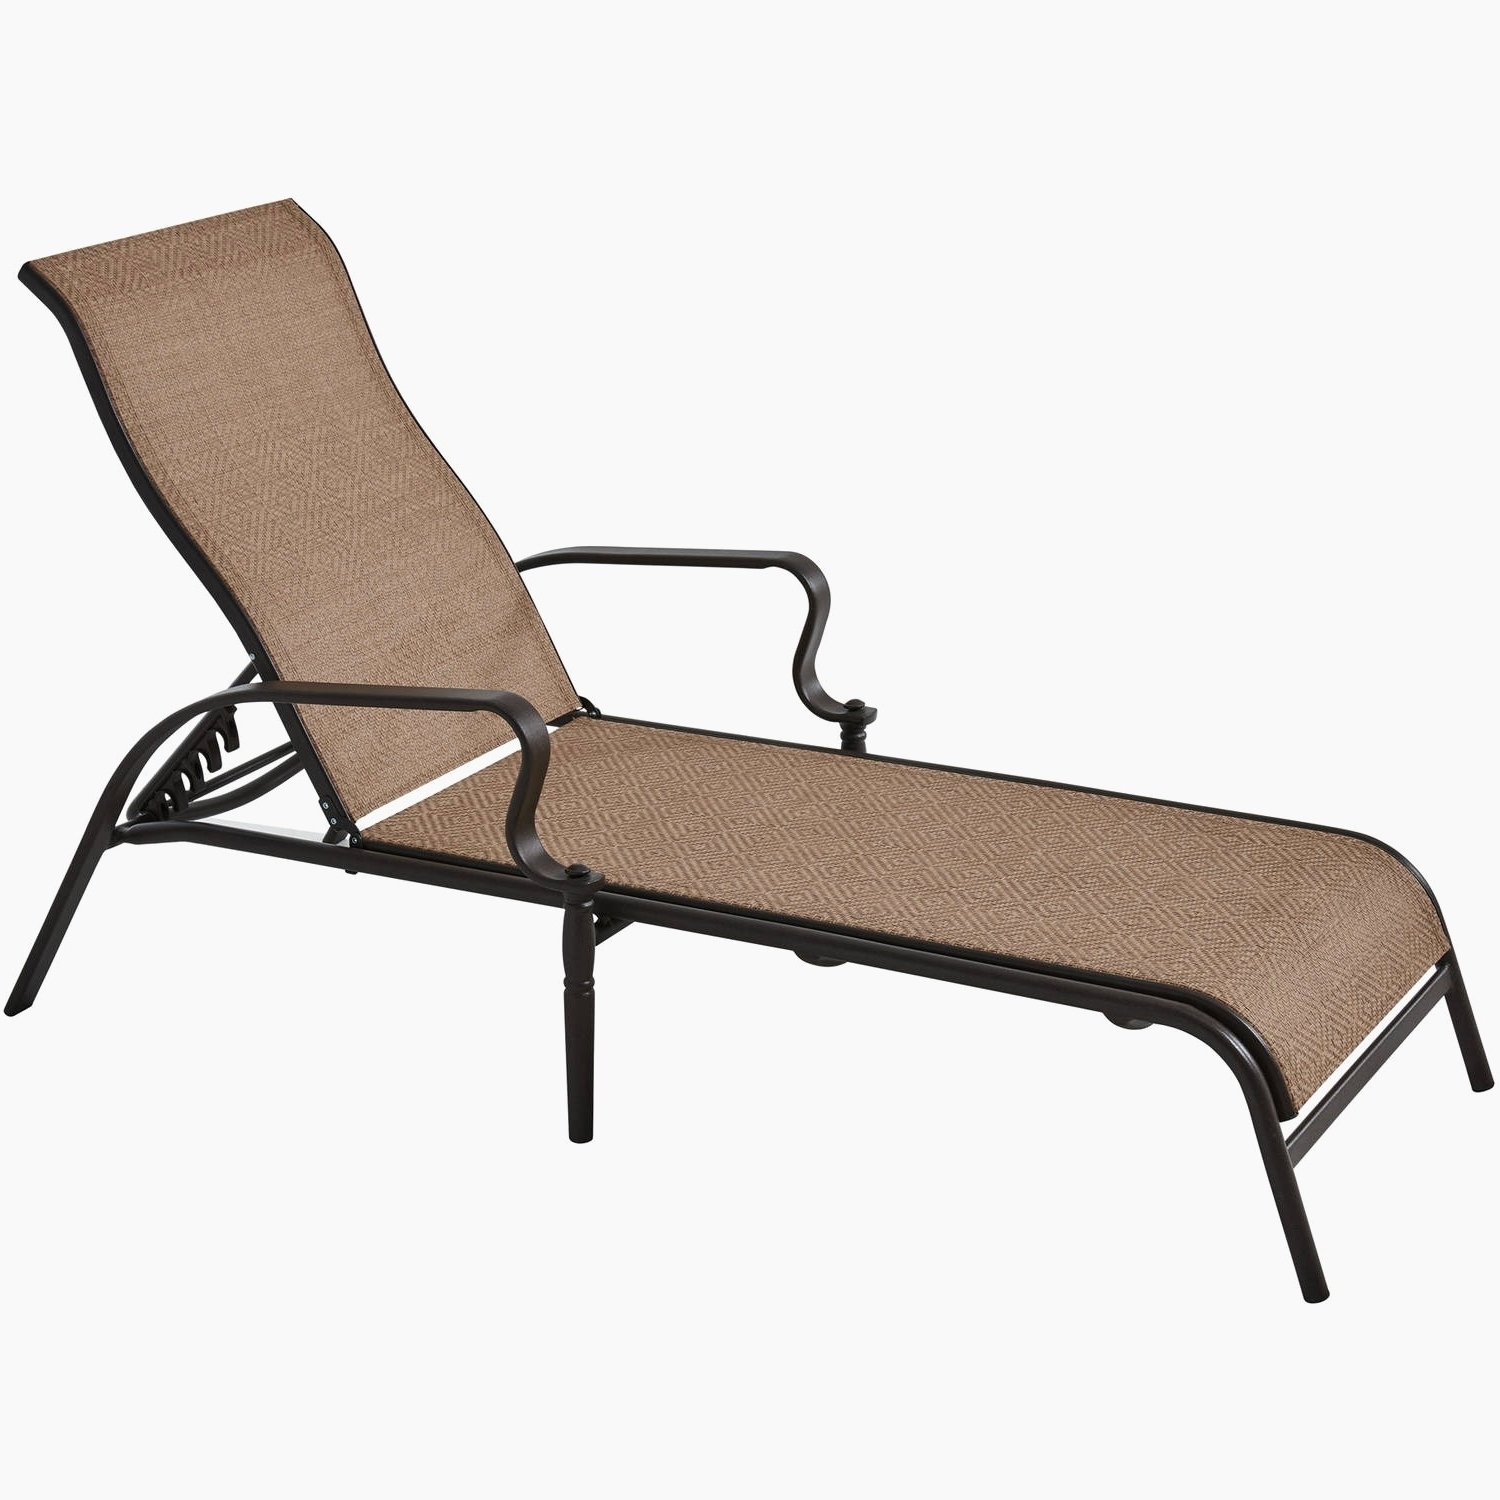 Sling Chaise Lounge Chairs With Fashionable Picture 25 Of 30 – Sling Chaise Lounge Chair Fresh Winston Lounge (View 11 of 15)